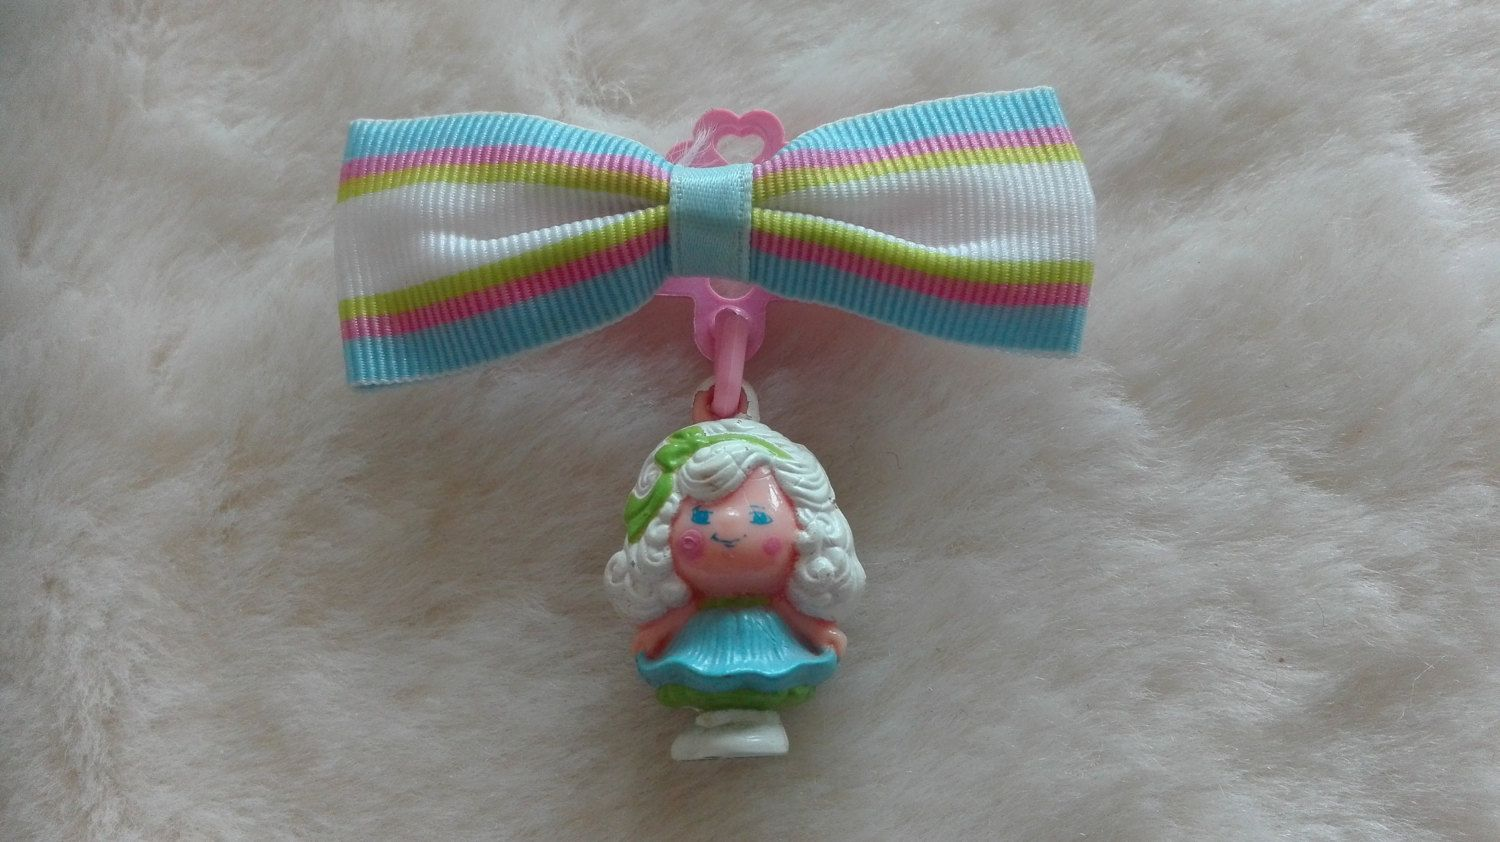 Vintage Hasbro dufti charmkins Morning Glory Barrette with Striped Fabric Bow Hair Clip  - 1980s, toy charm by MetalmanEd on Etsy